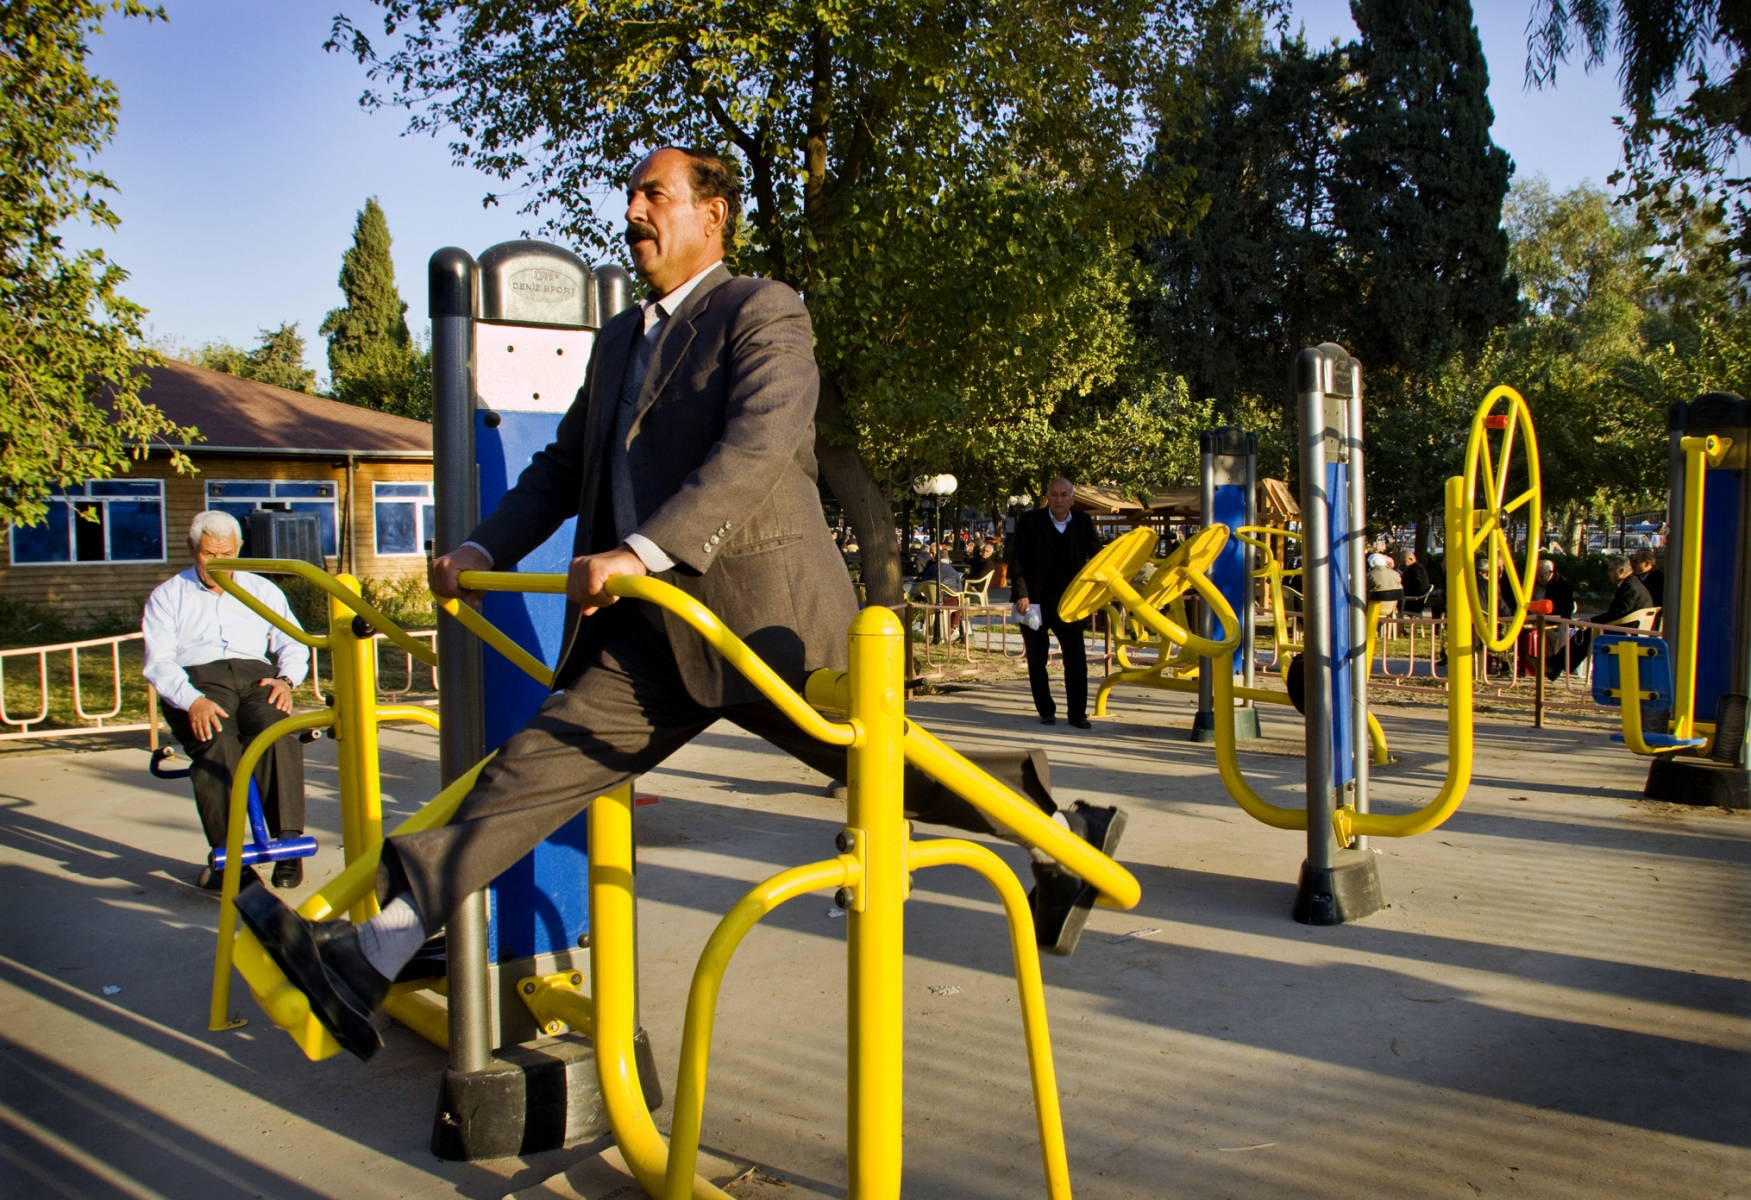 Outdoor gym in Erbil, Iraq 2009